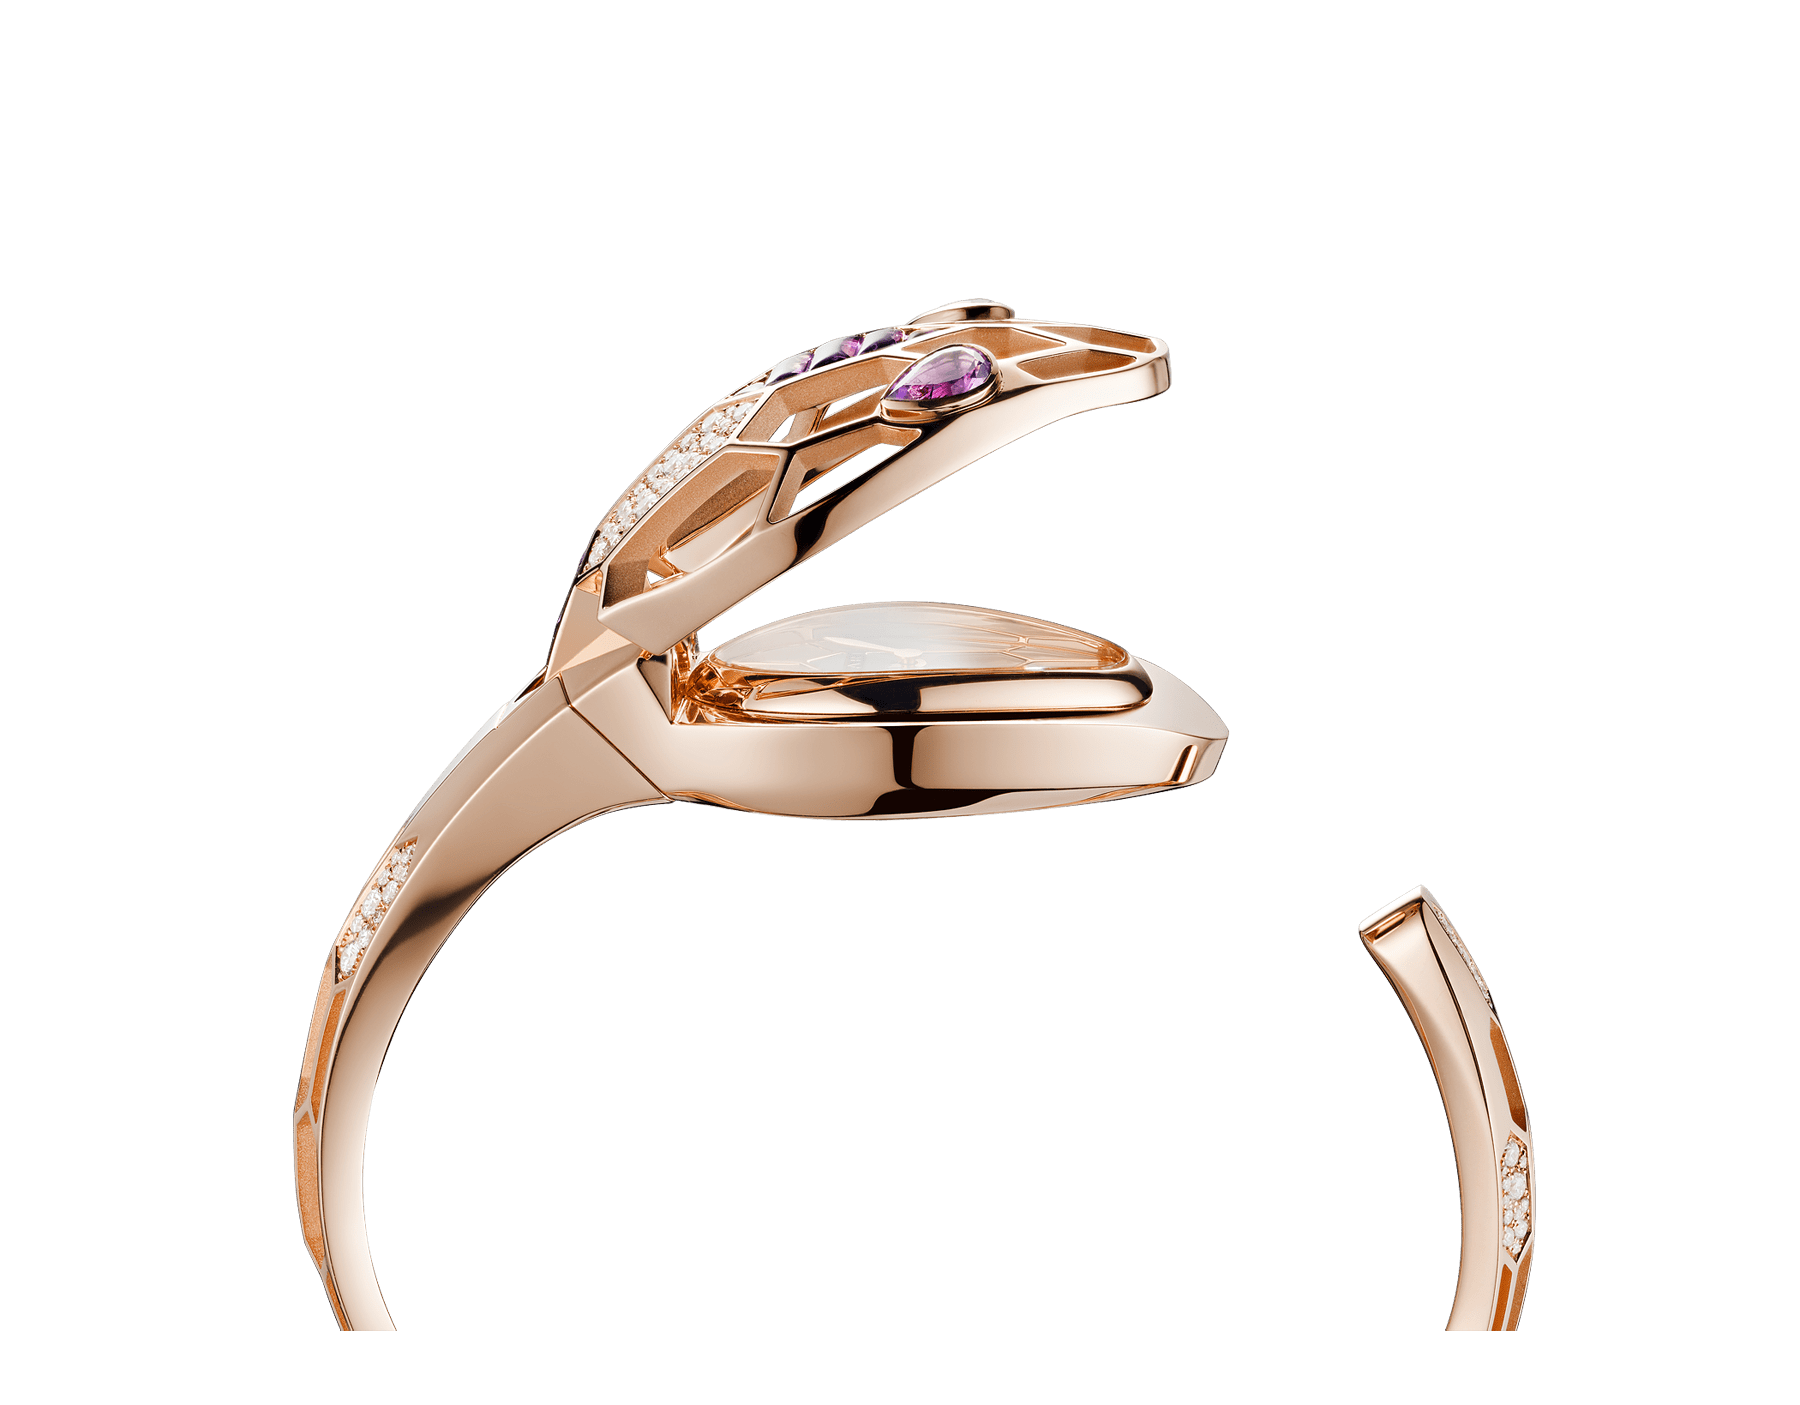 Serpenti Misteriosi Secret Watch in 18 kt rose gold case and bracelet both set with round brilliant-cut diamonds and baguette-cut amethysts, mother-of-pearl dial and pear shaped amethyst eyes. Medium size 103056 image 3